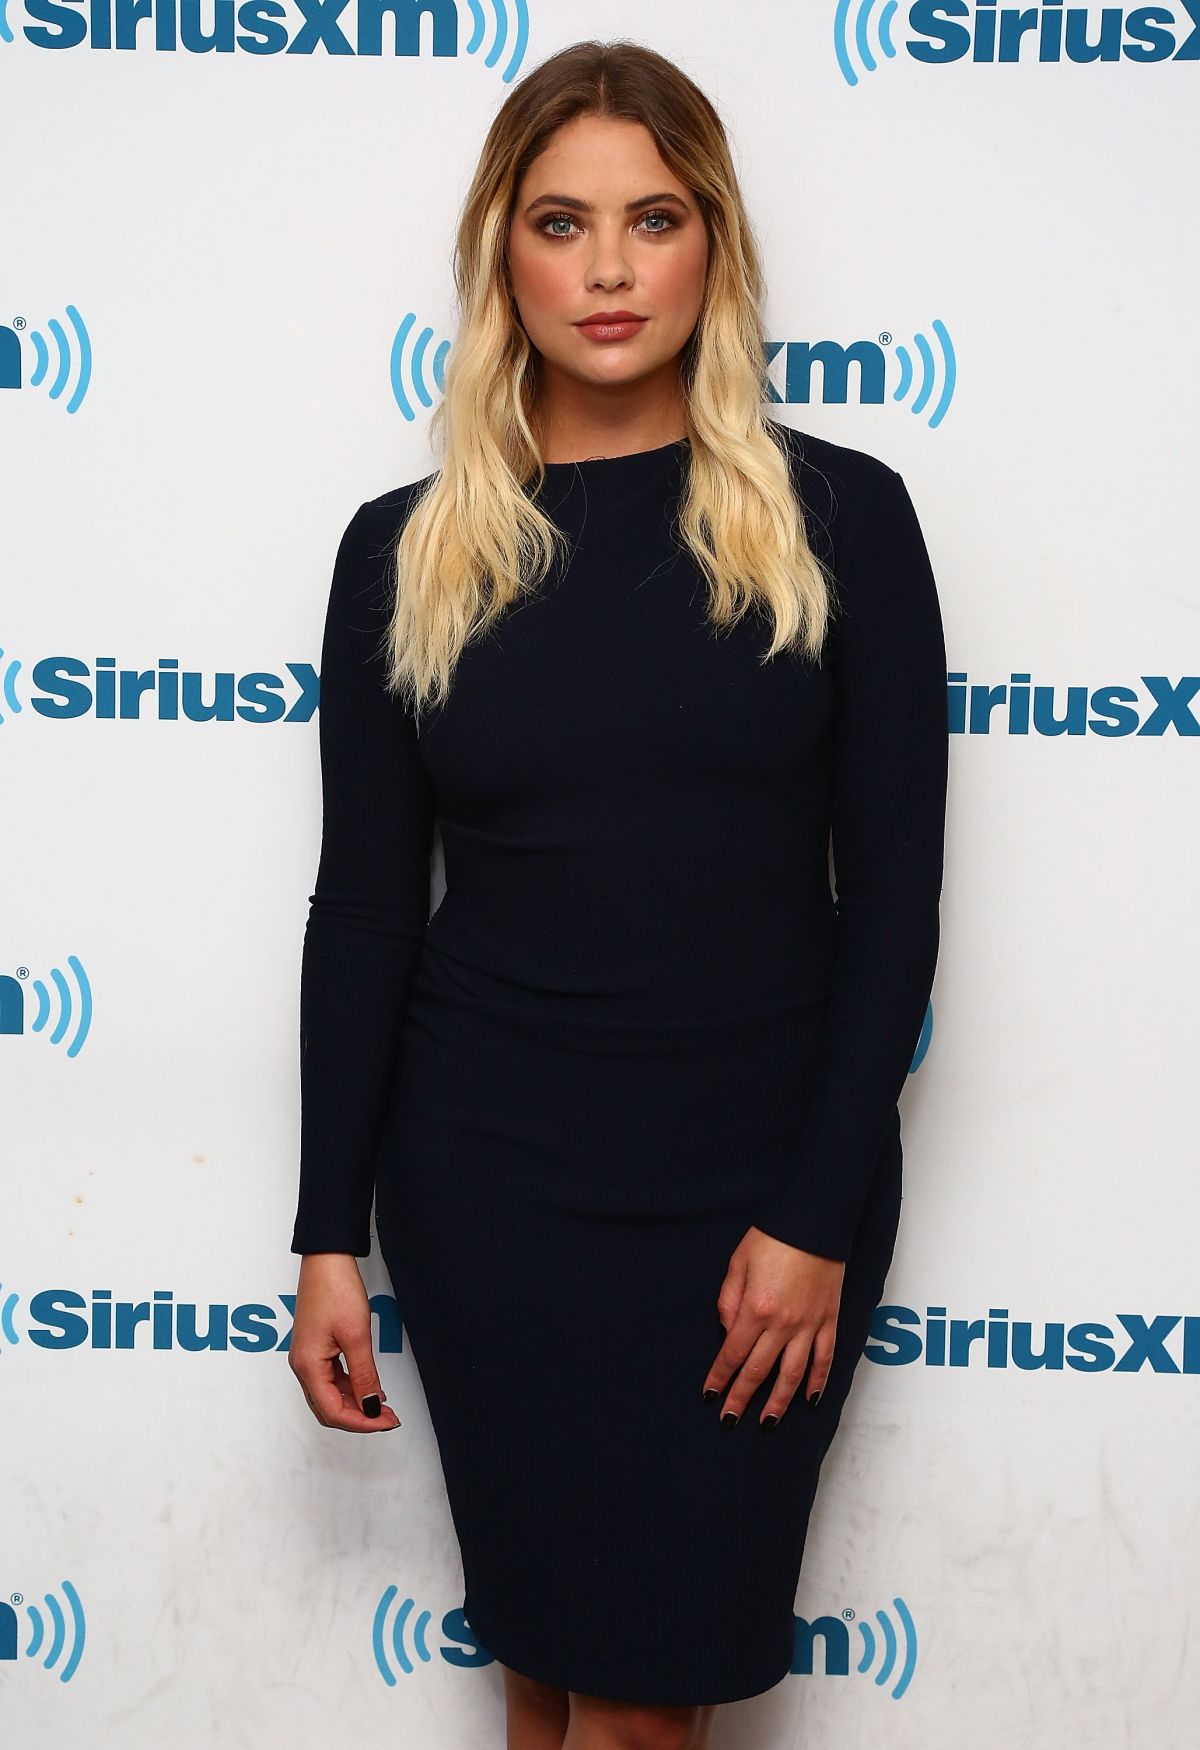 ASHLEY BENSON at SiriusXM Studio in New York 08/02/2017